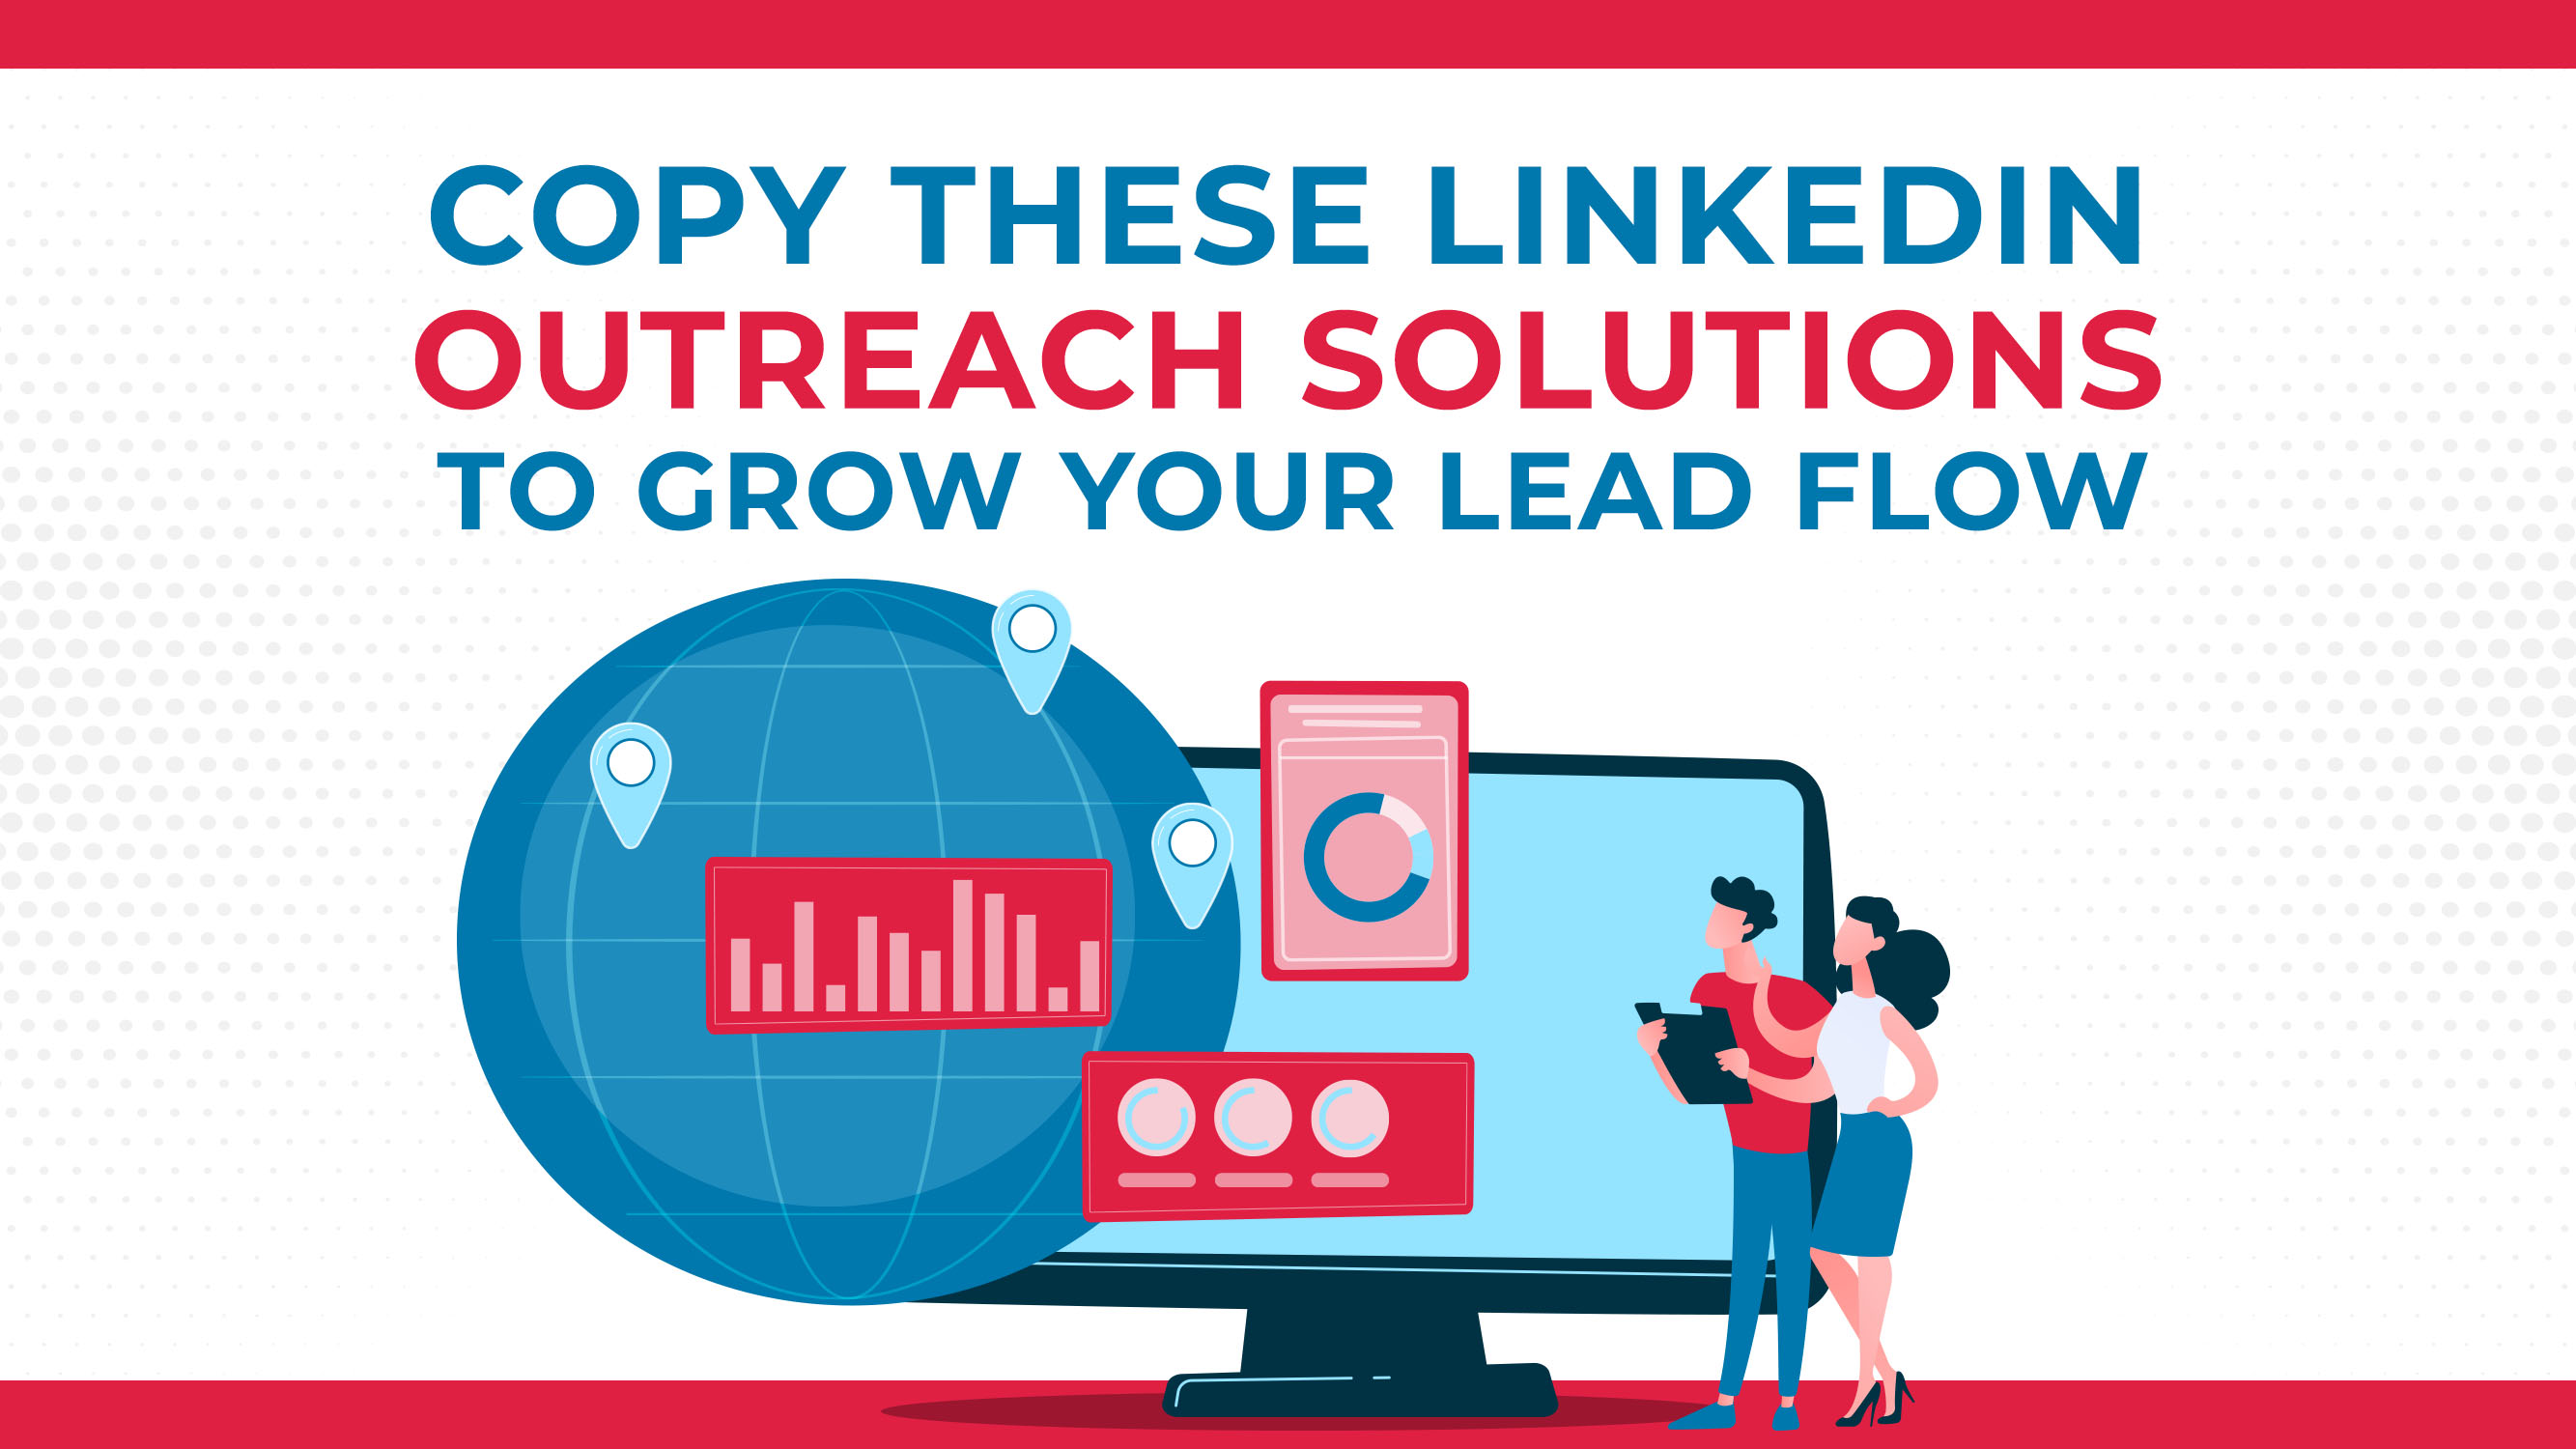 Copy These LinkedIn Outreach Solutions To Grow Your Lead Flow